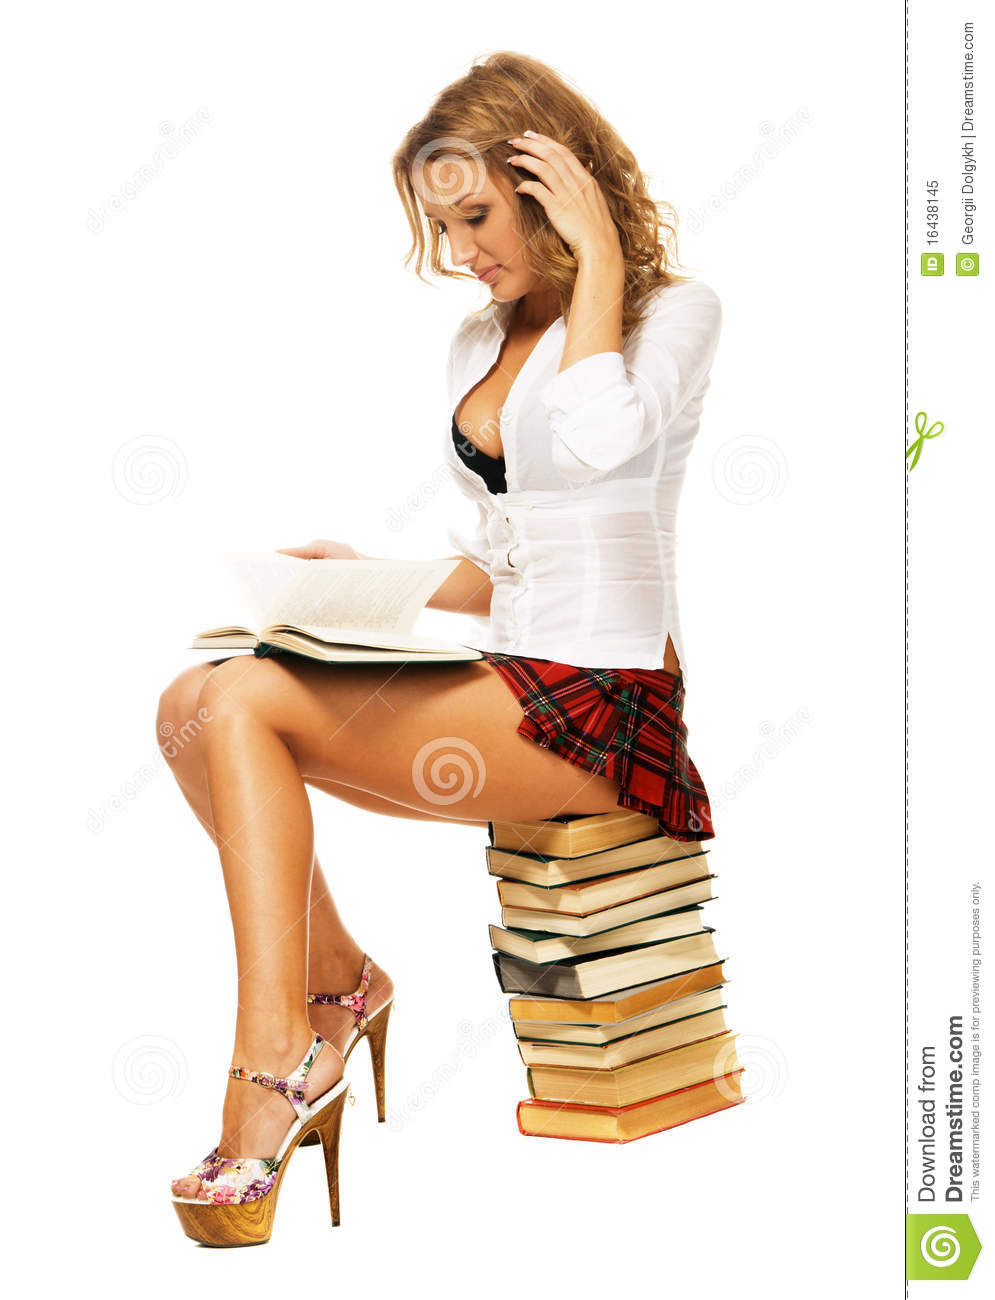 student girl with a stack of books